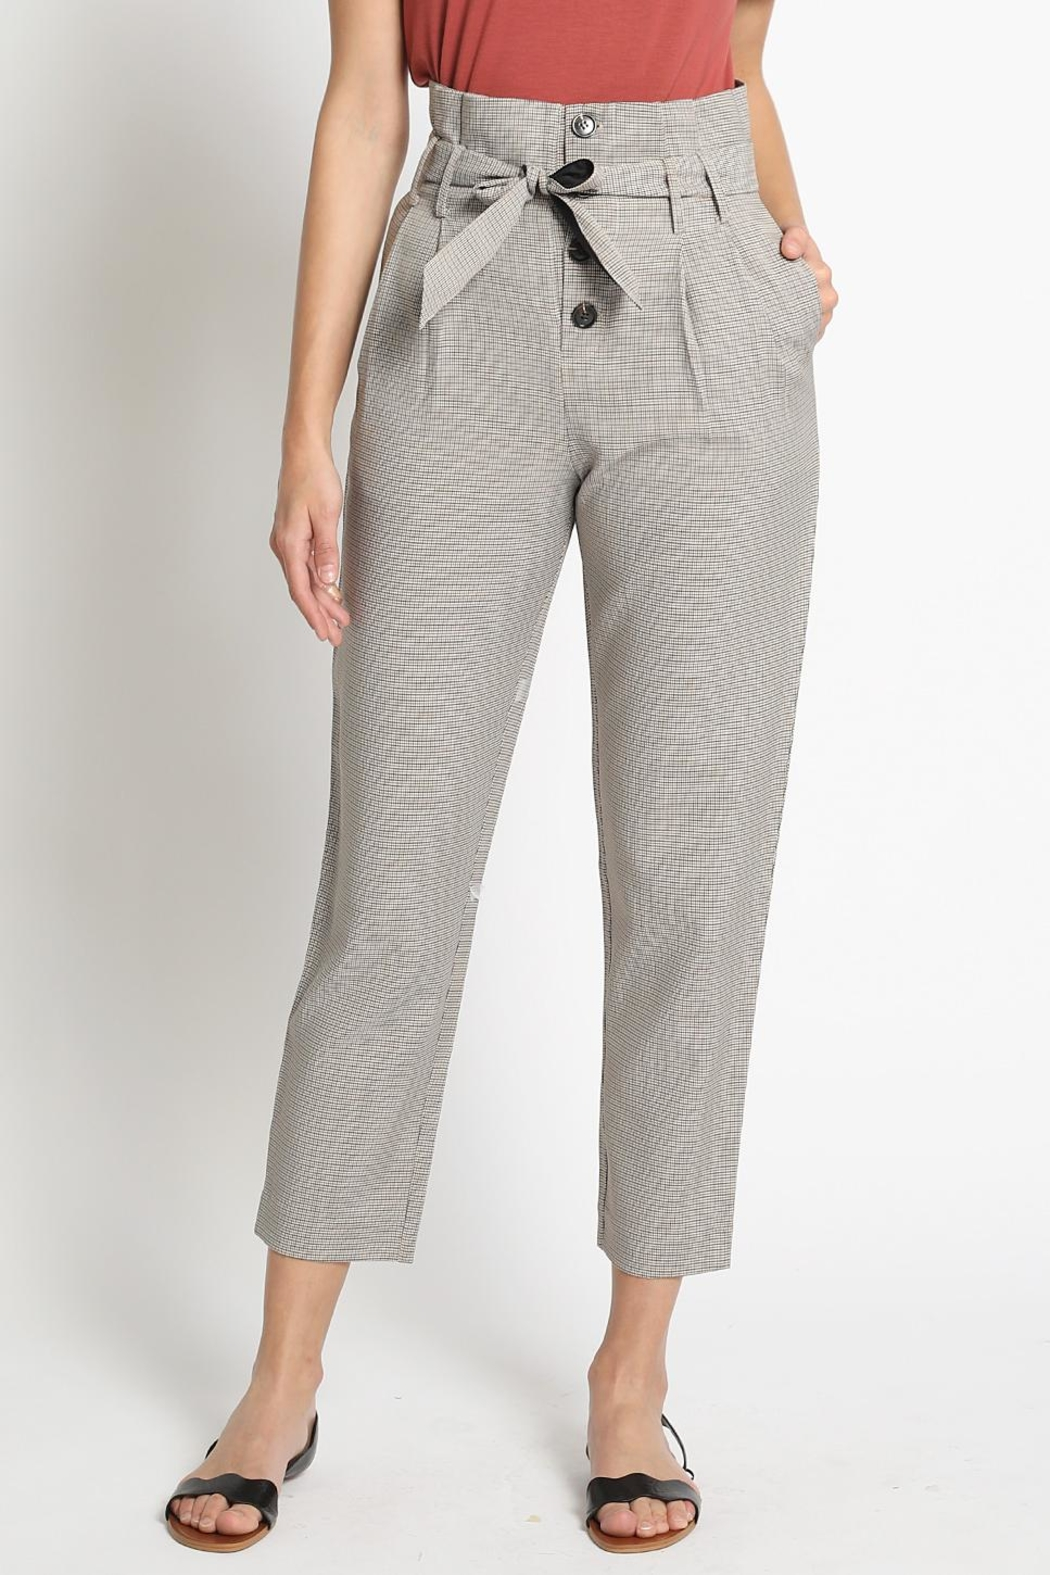 Sans Souci Brown Houndstooth Pants - Main Image